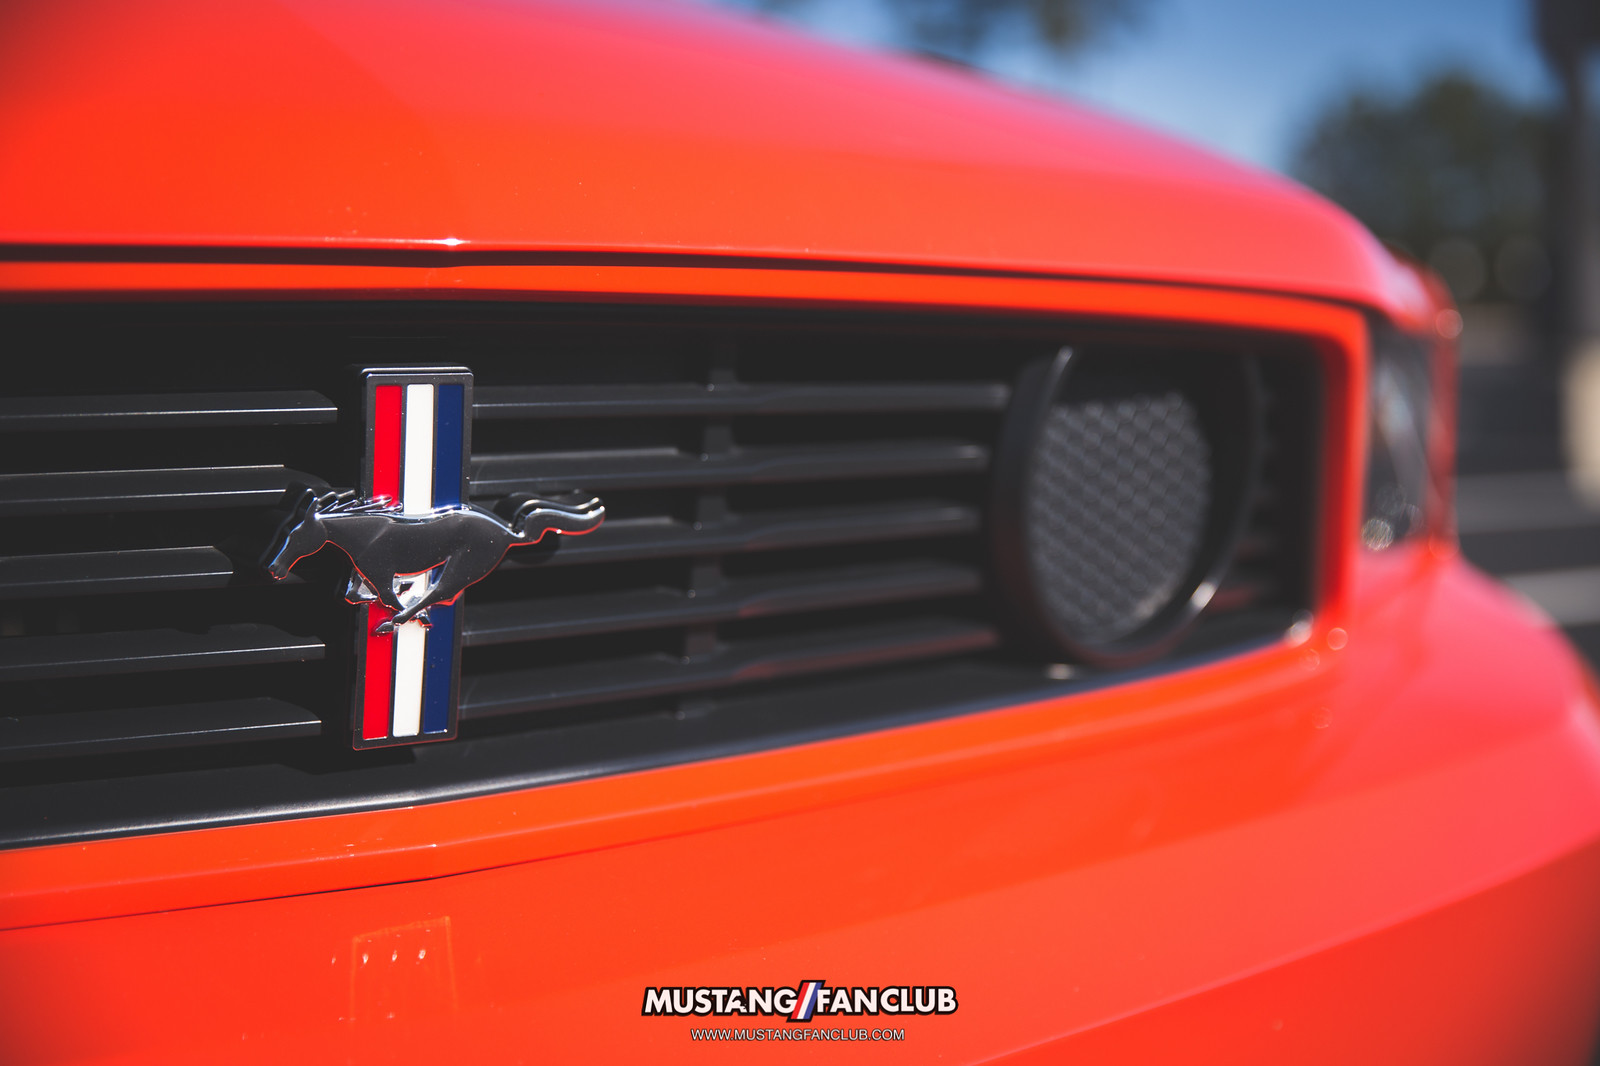 2012 12 ford mustang fan club competition orange boss 302 front grille grill tri bar pony fog light delete